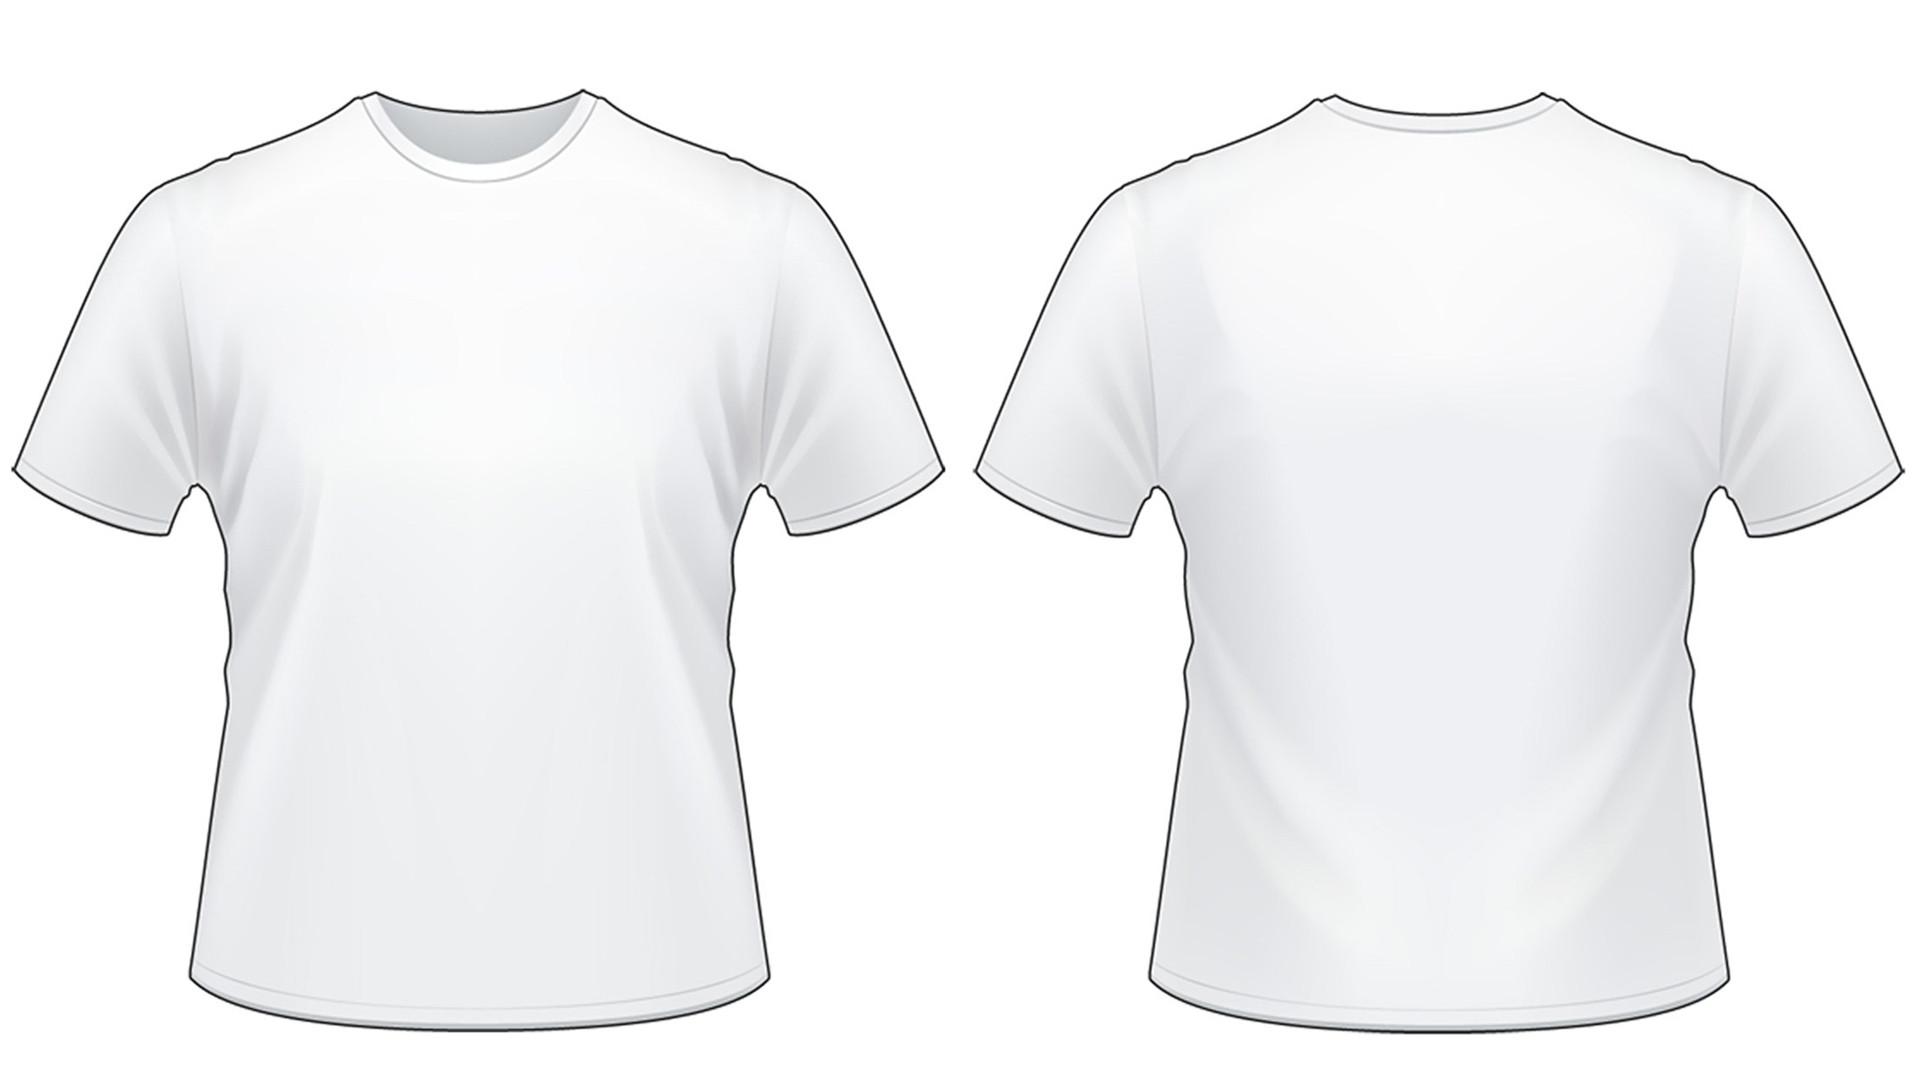 Free T Shirt Template Blank Tshirt Template Worksheet In Png Hd Wallpapers